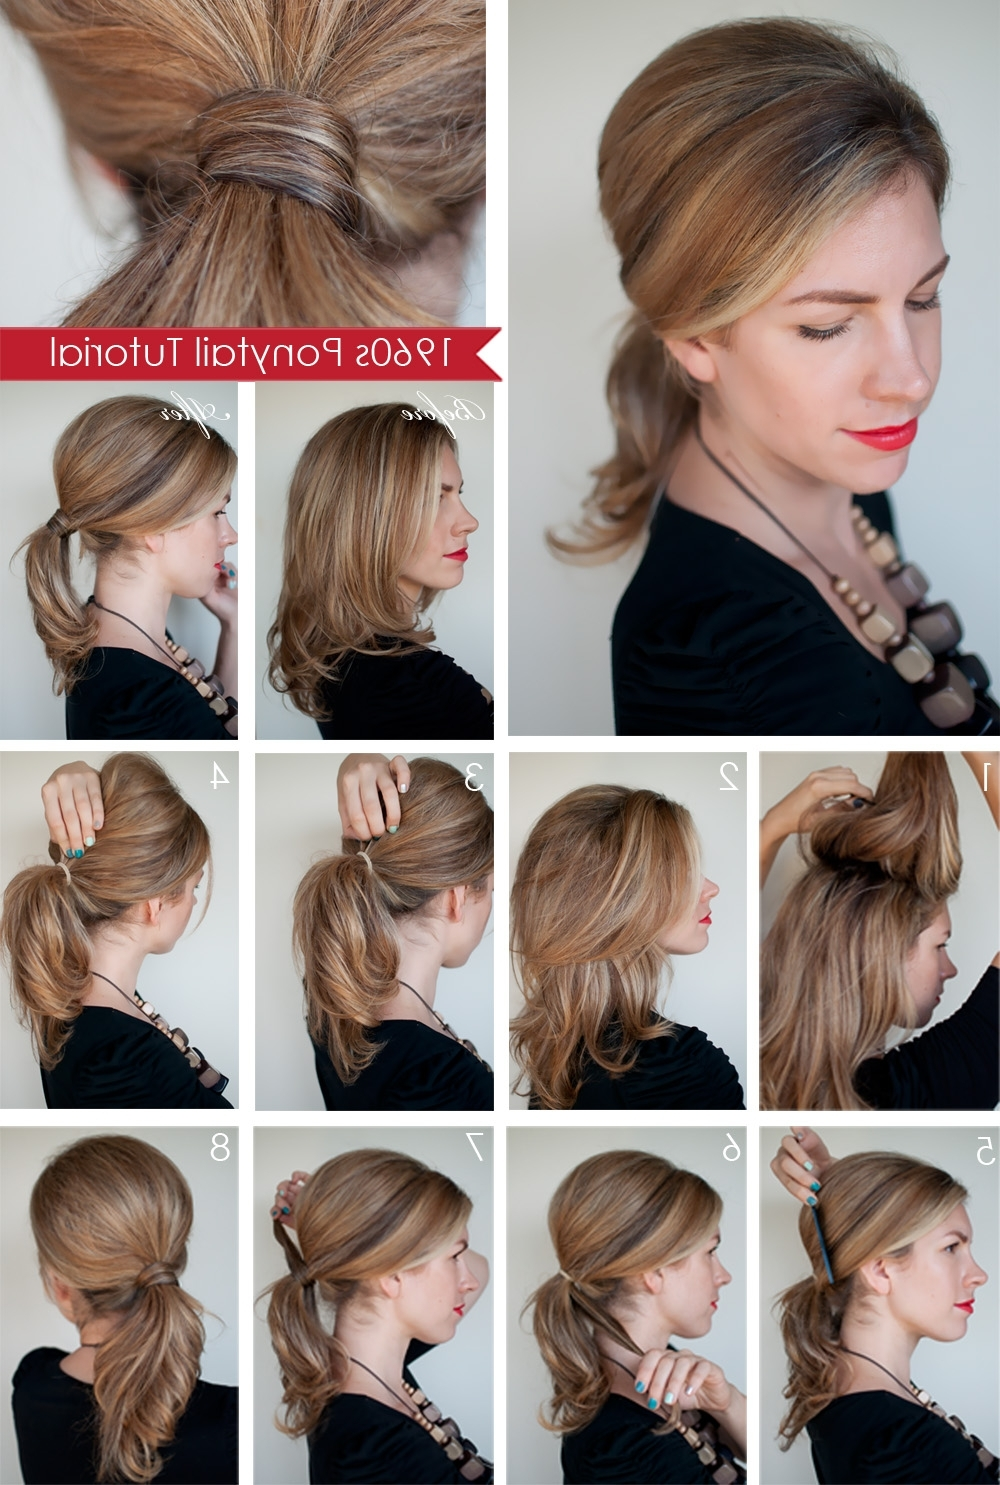 Hairstyle How To: Create A 1960S Style Ponytail – Hair Romance Within Most Recent Bouffant Ponytail Hairstyles For Long Hair (View 10 of 20)